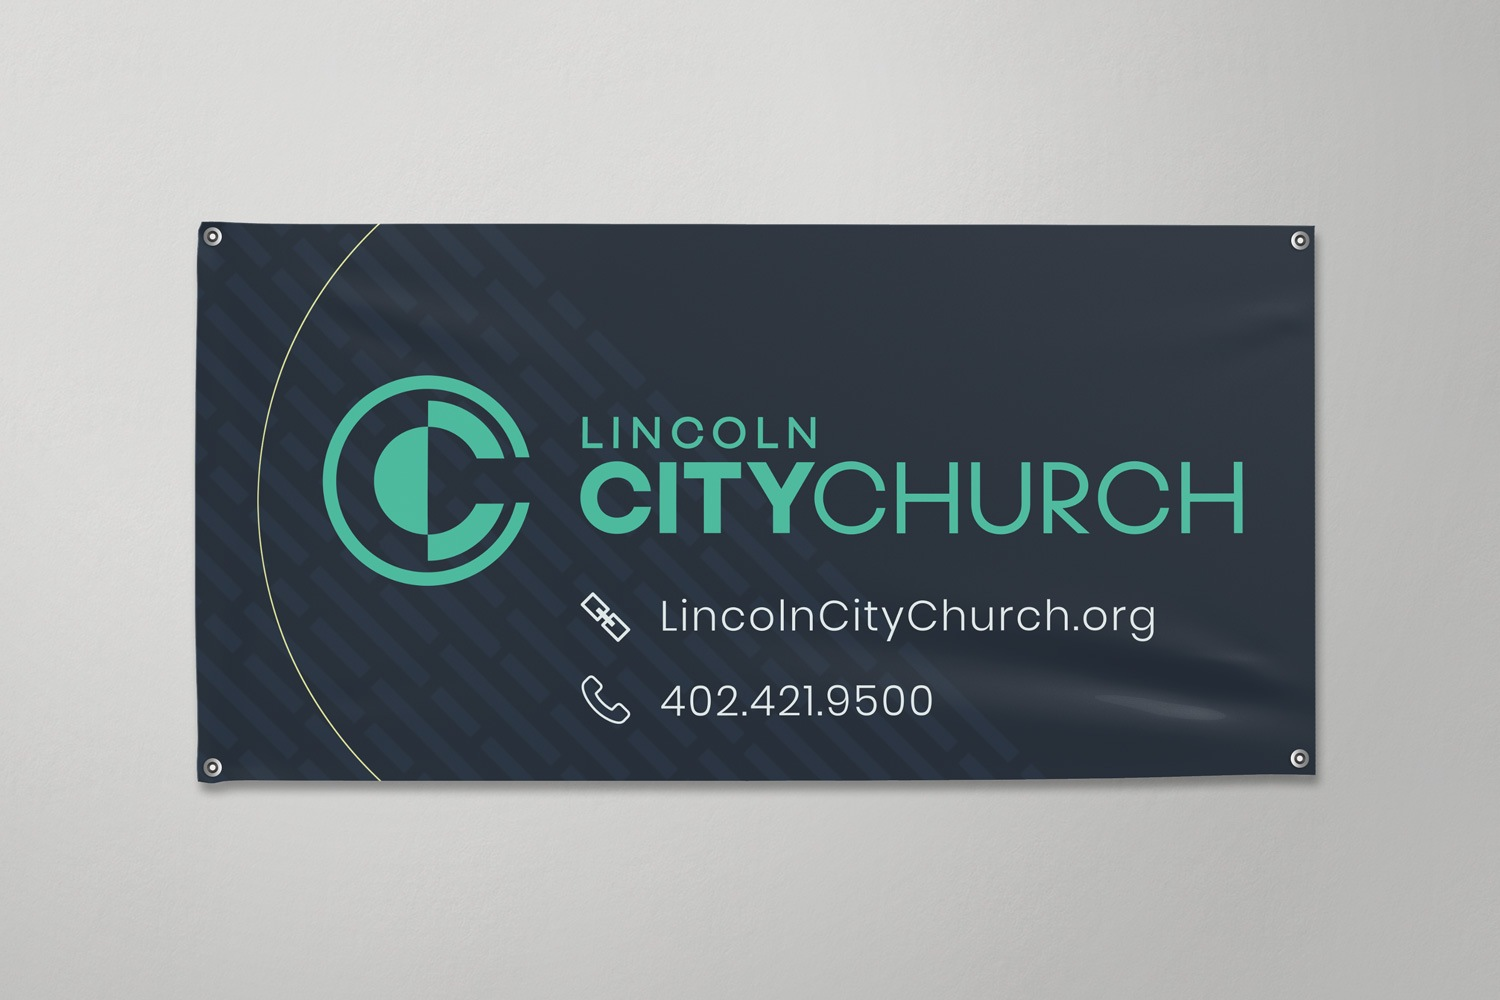 custom church banners design and printing for church branding, marketing, outreach ideas